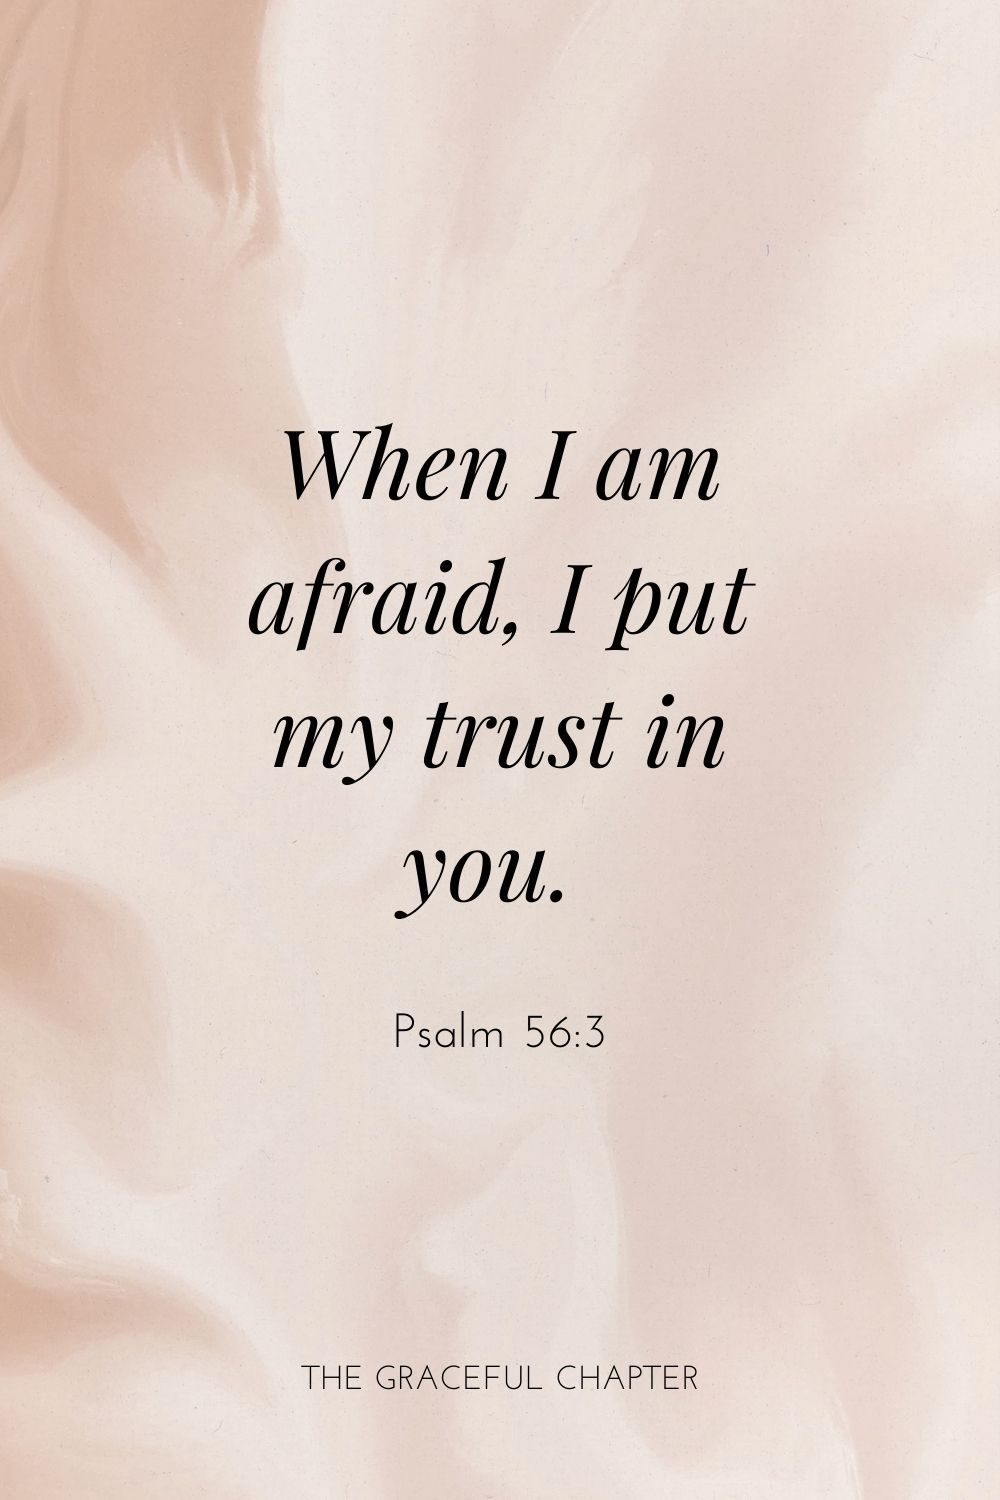 When I am afraid, I put my trust in you. Psalm 56:3